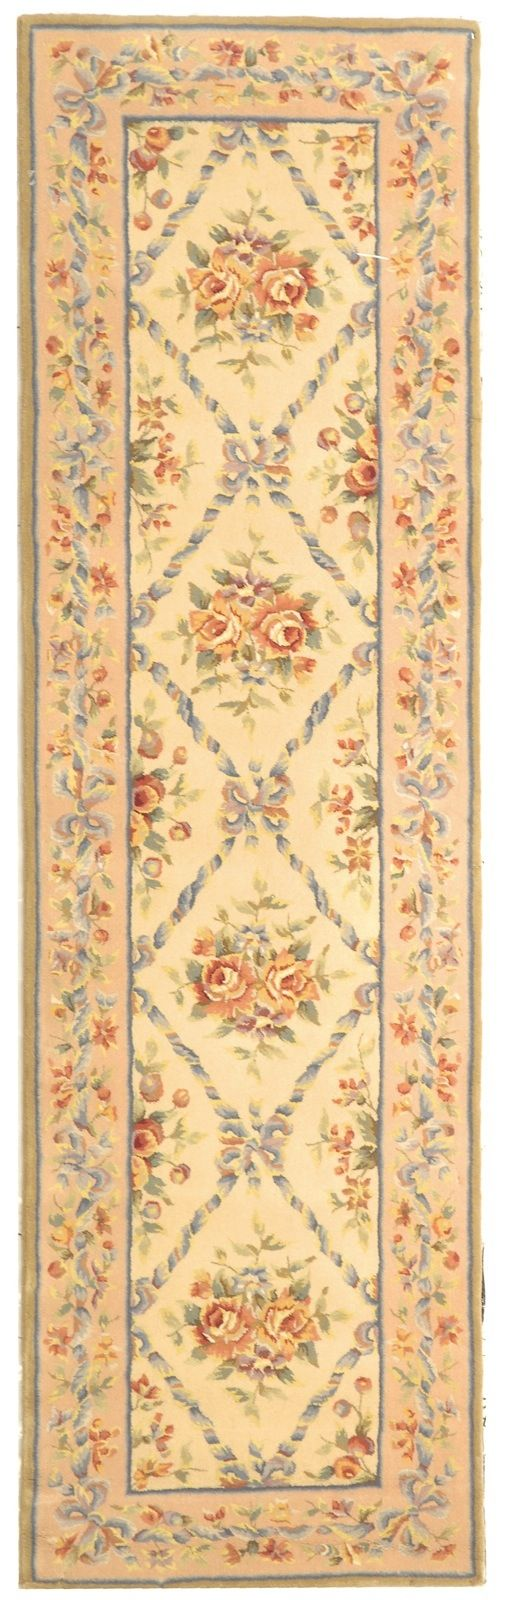 safavieh french tapis country & floral area rug collection